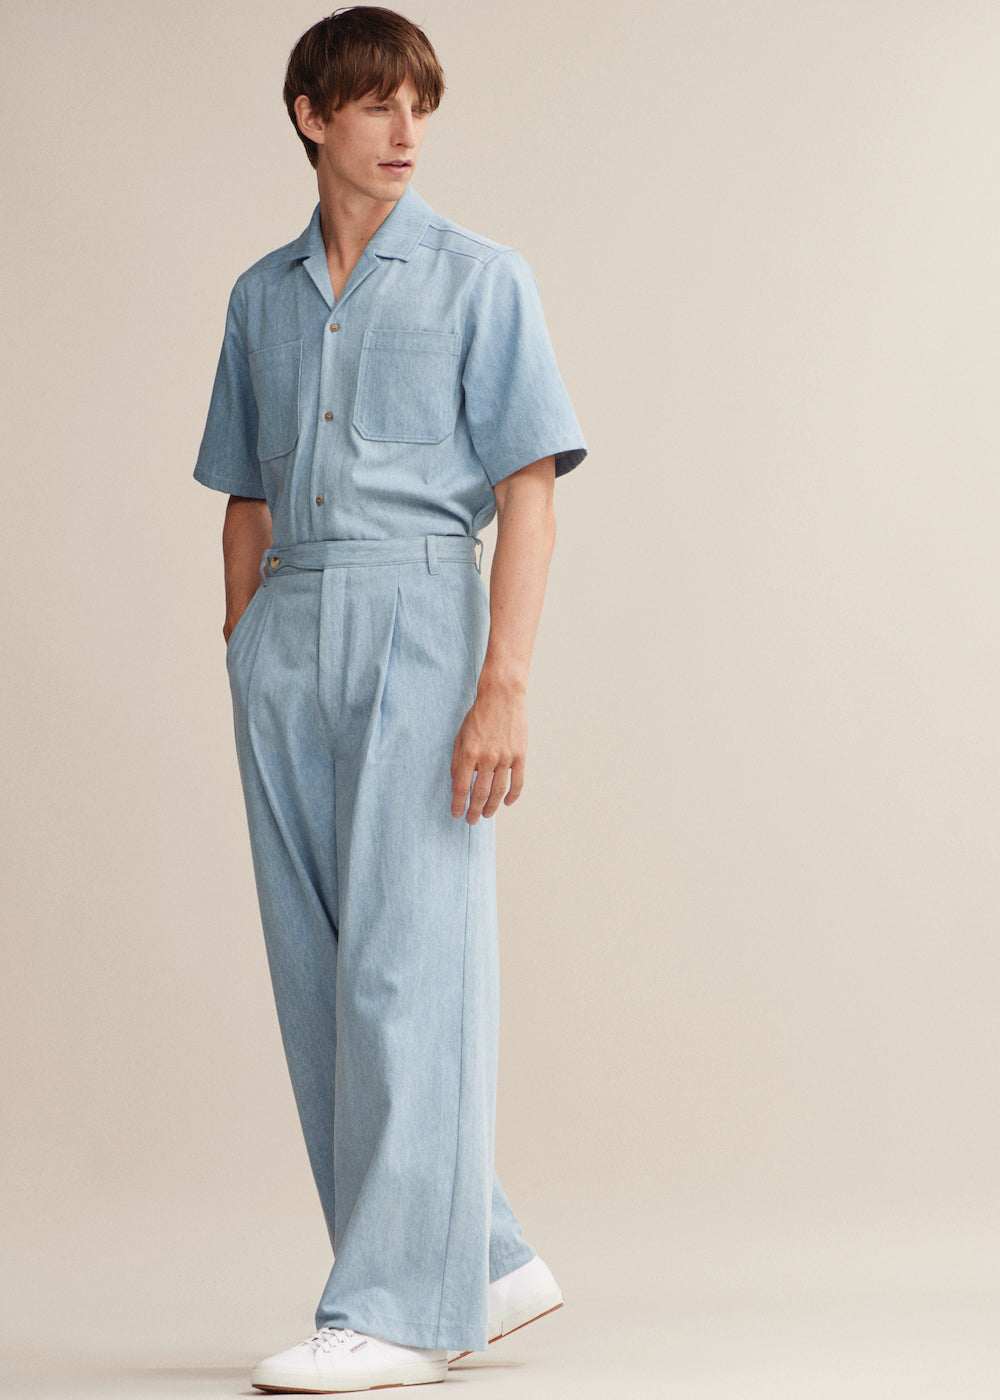 Wide Leg Pleat Trouser - King & Tuckfield